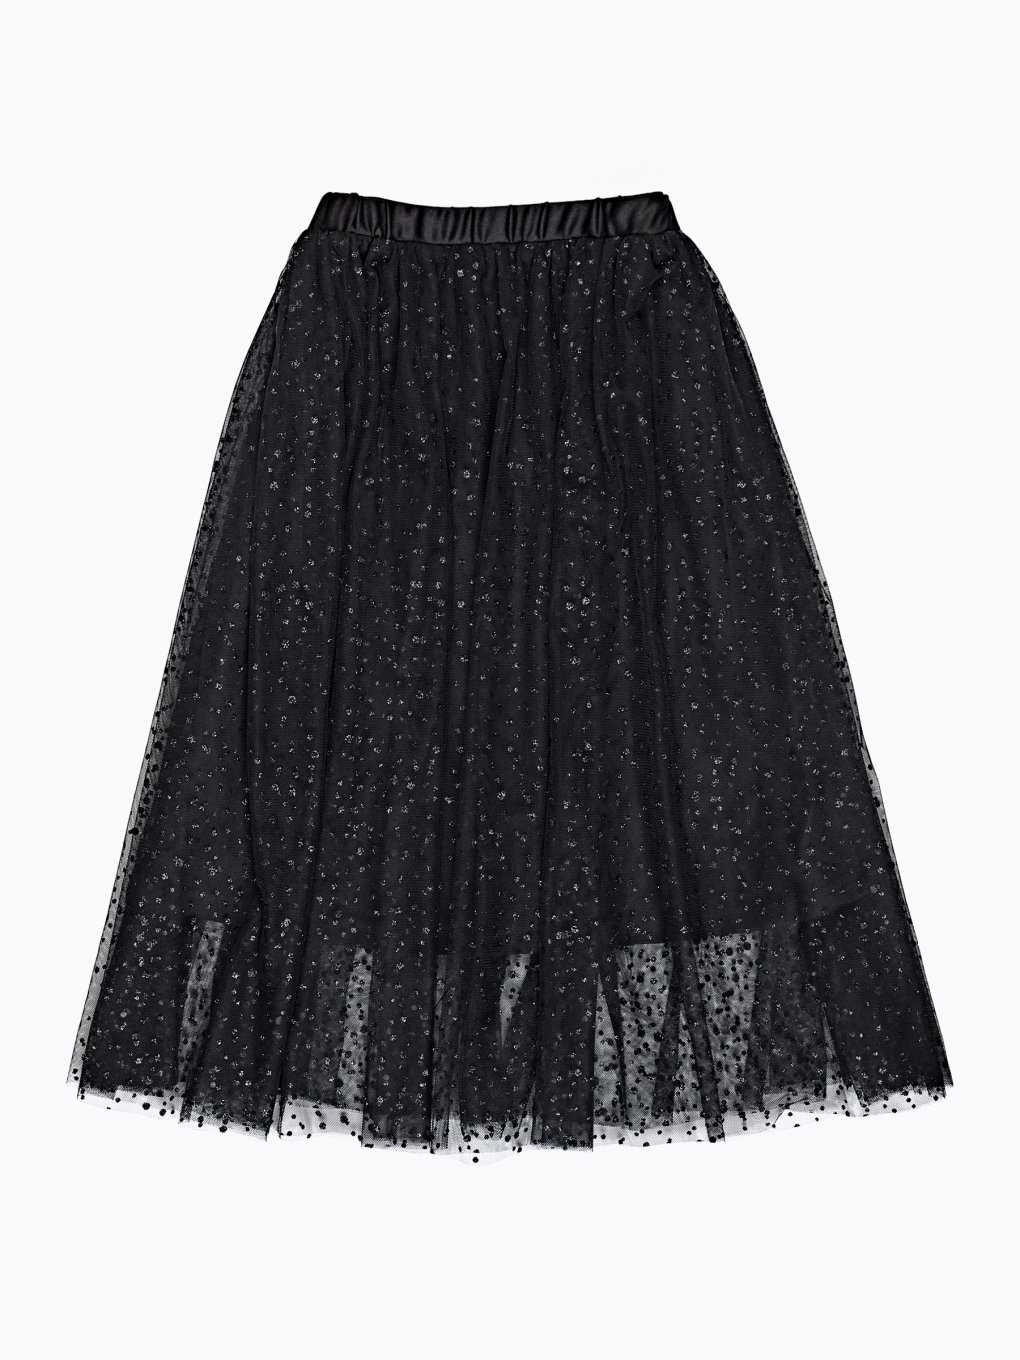 Tulle skirt with glitter dots